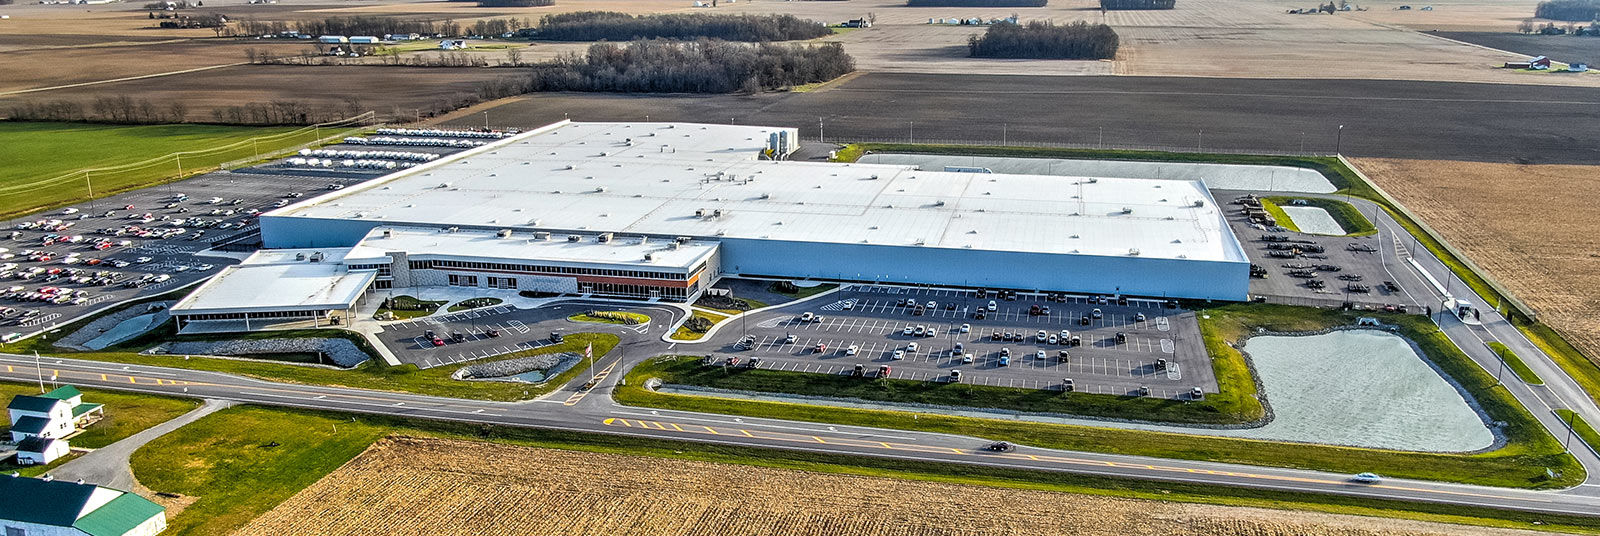 The Airstream headquarters and manufacturing facility in Jackson Center, Ohio.